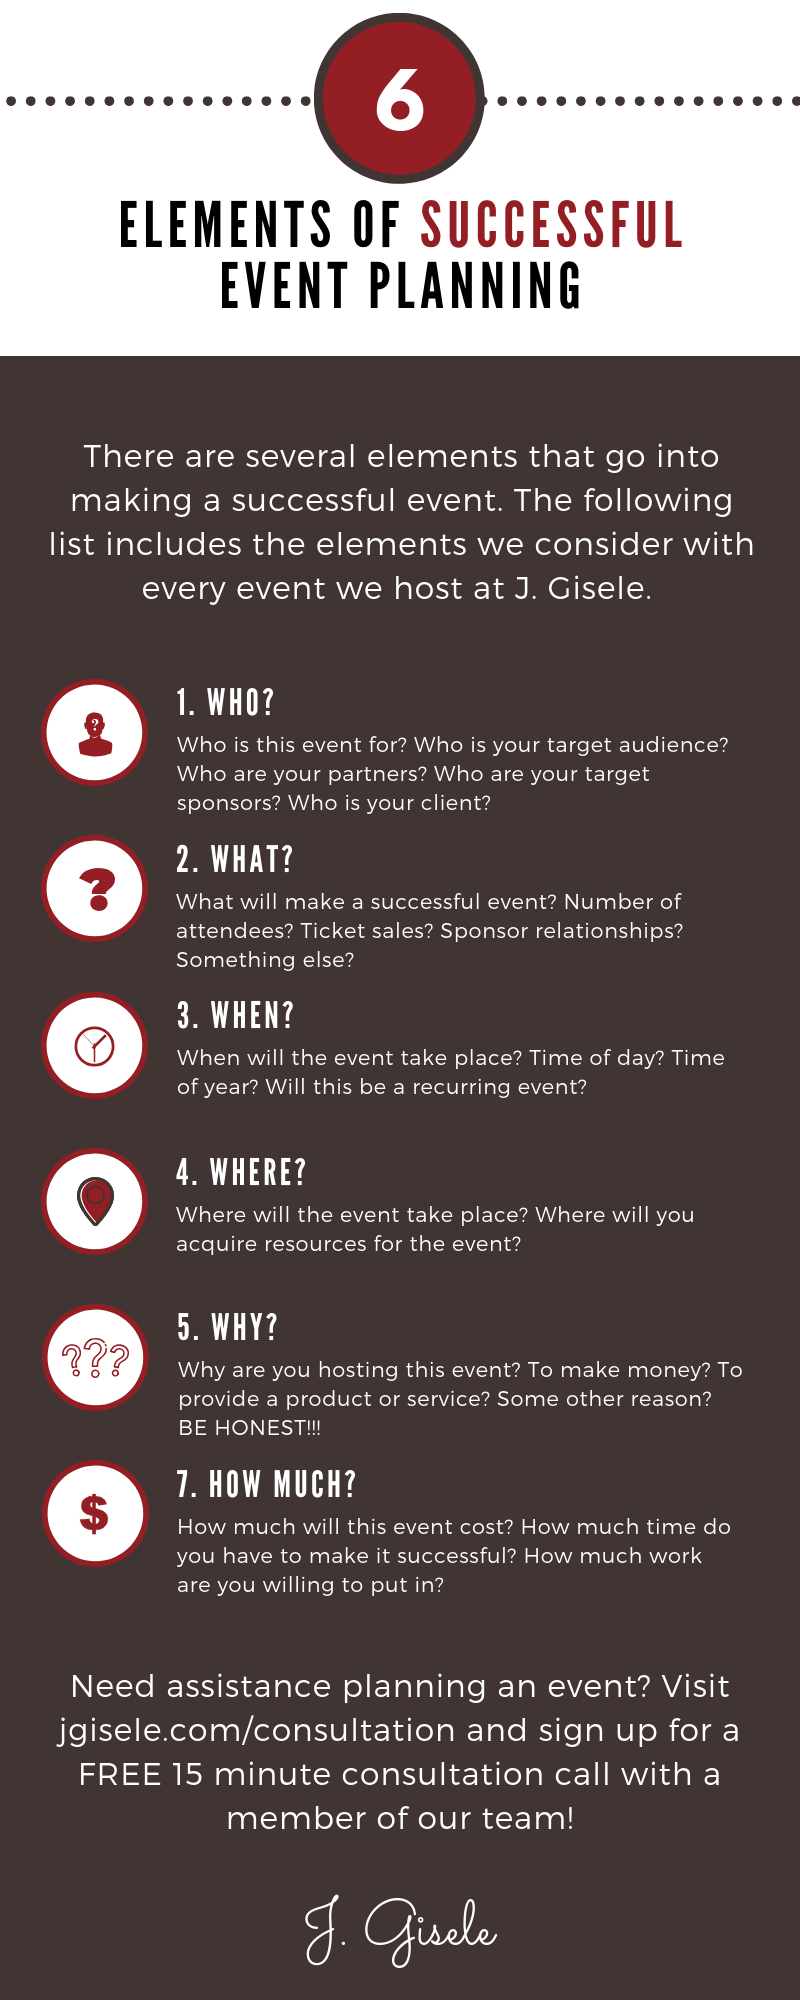 6 Elements of Successful Event Planning.png